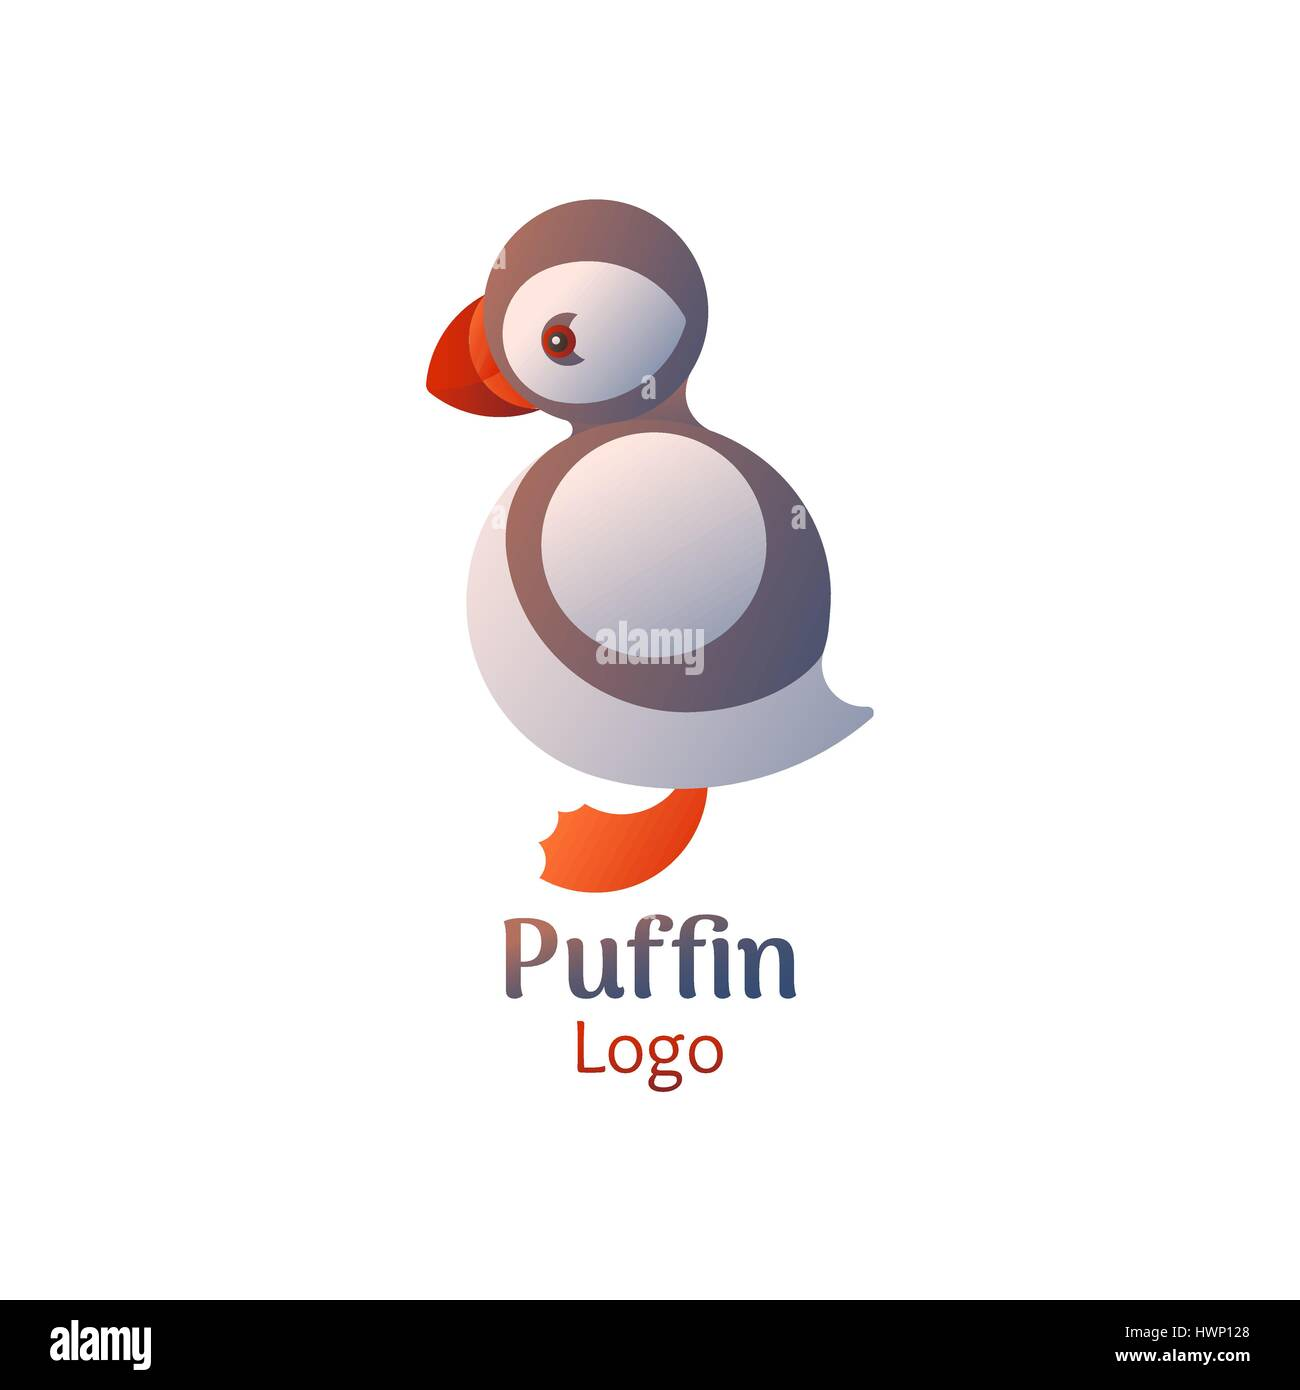 Puffin logo - Stock Vector